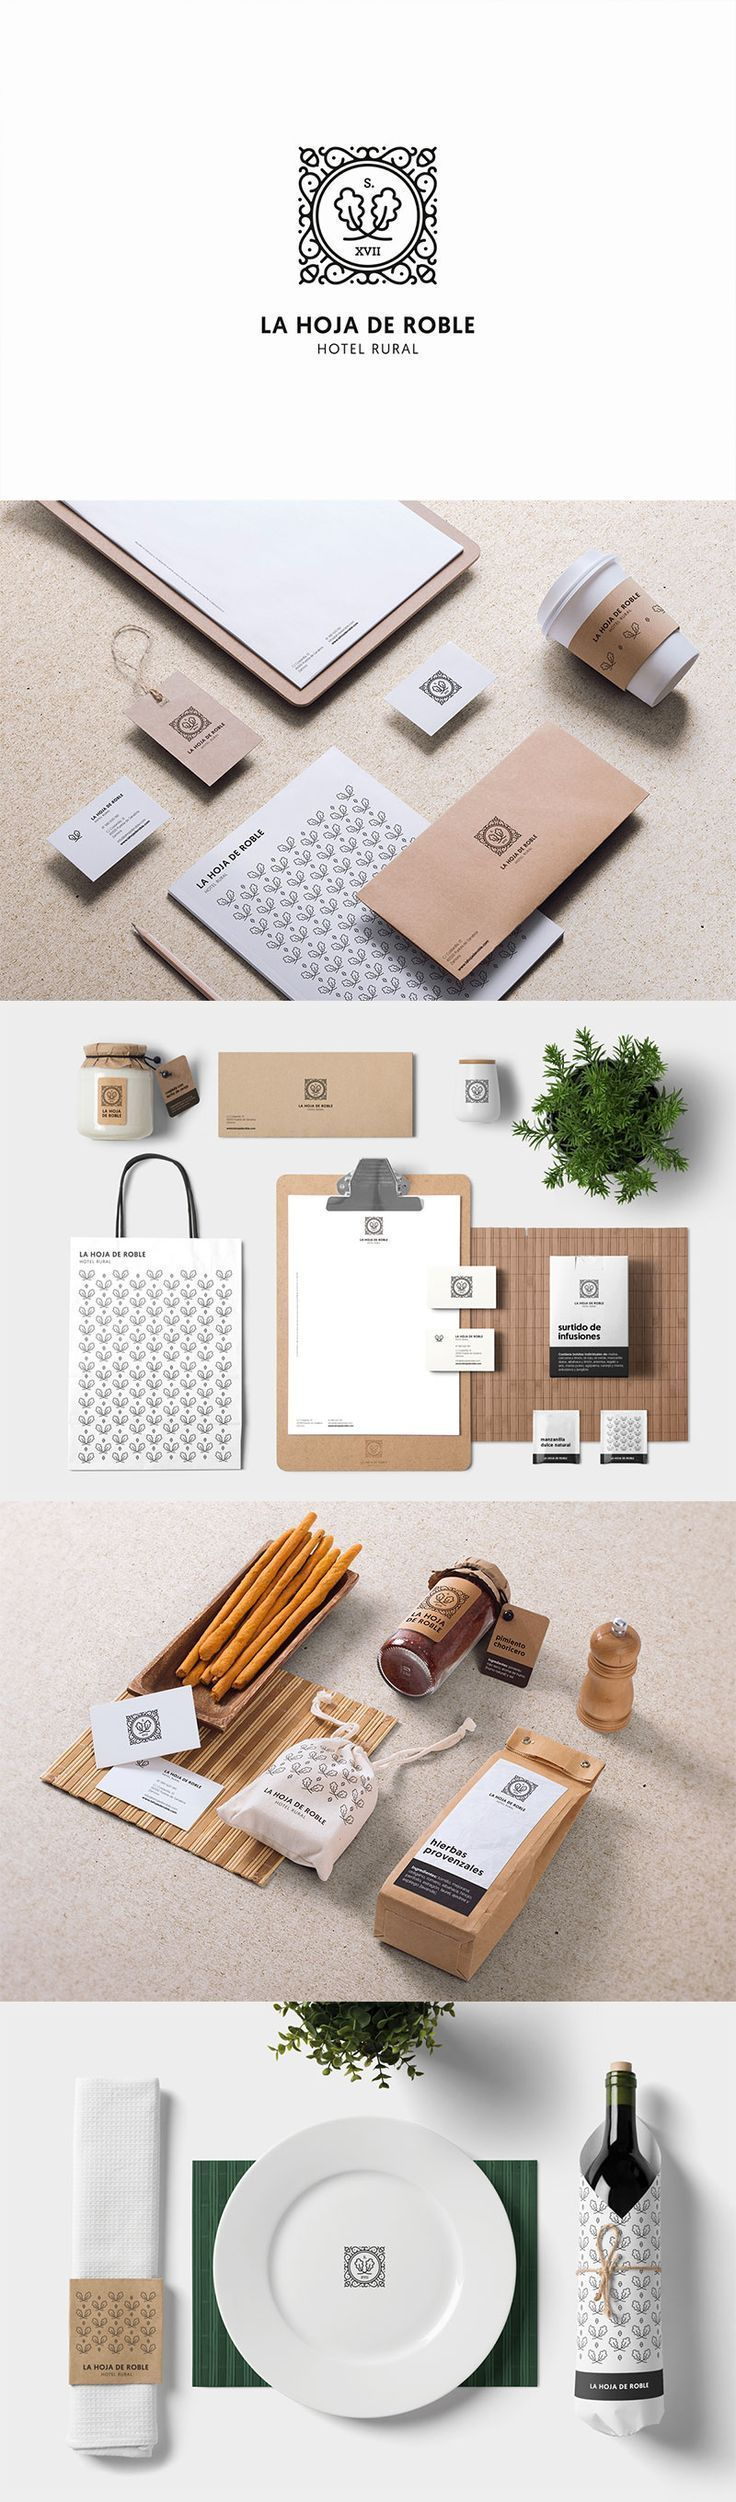 Branding for La Hoja de Roble. Simple and classy. | Hotel advertising | Hotel promotion | Hotel campaign | Hotel communication | Hotel visual identity | Hotel graphic design | Hotel social media | Hotel logo | Logo design | Hospitality design | Hotel logo design | Hotel brand identity | Hotel branding |